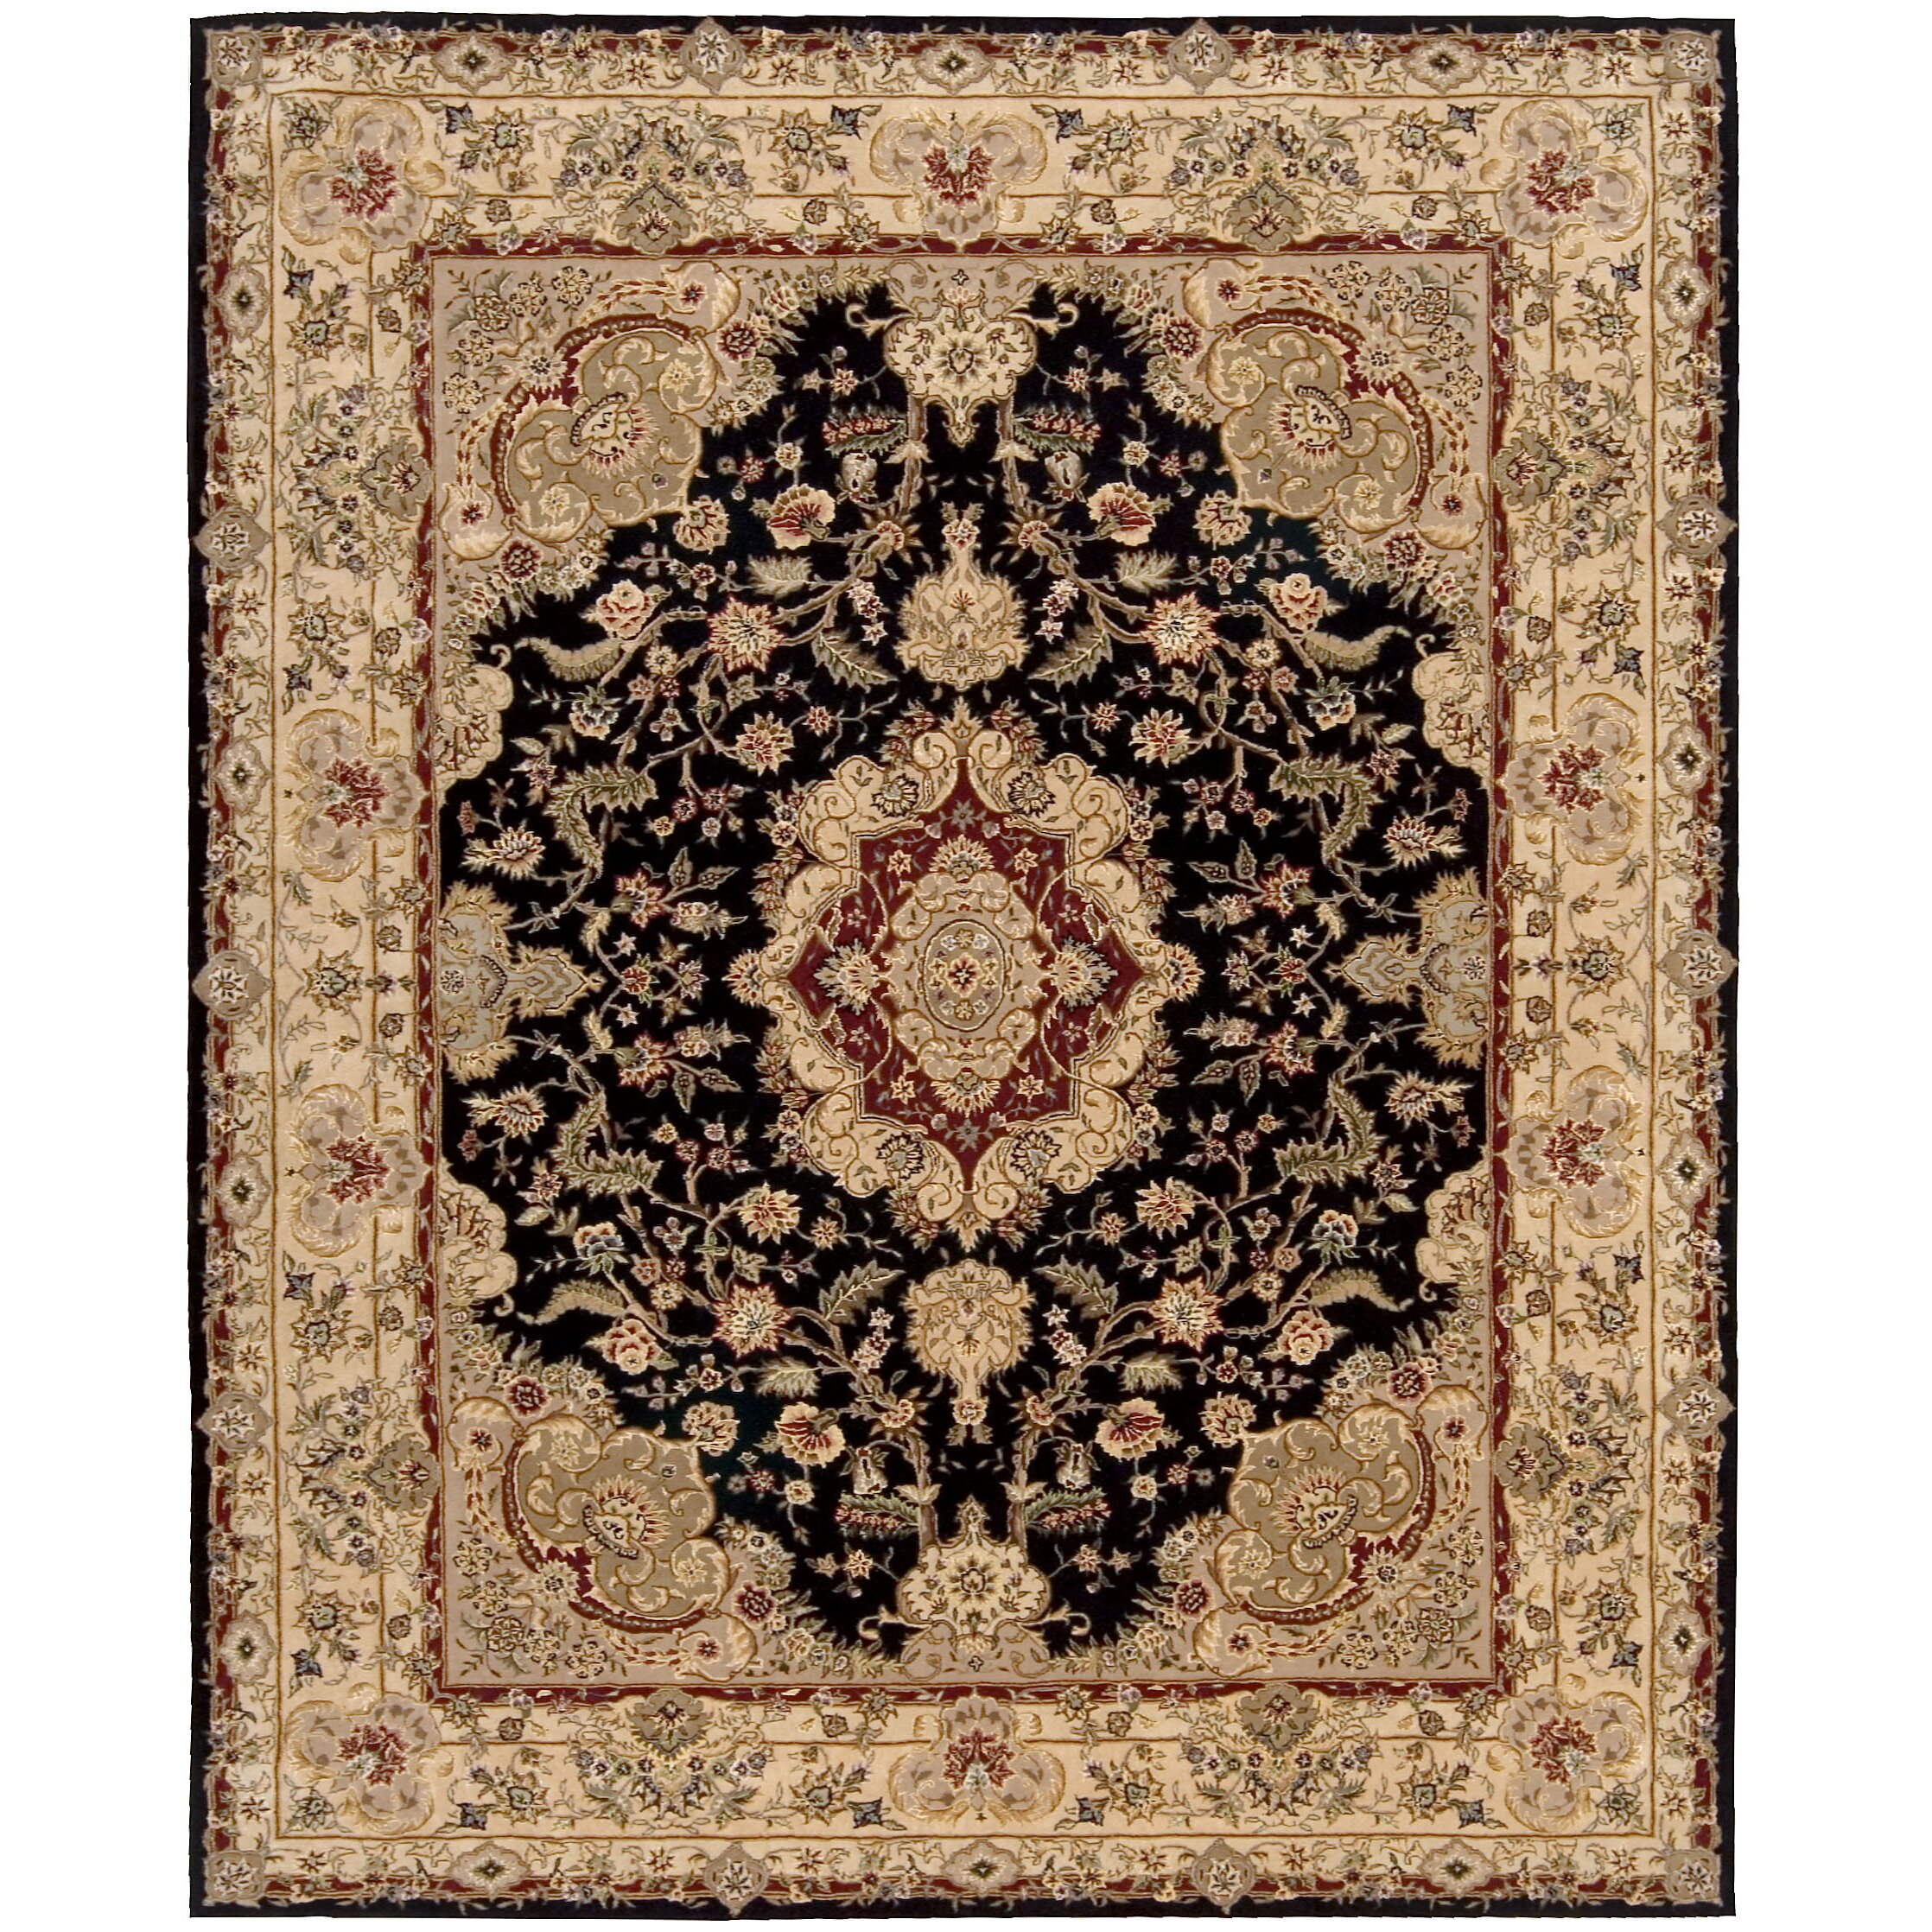 nourison nourison black tan area rug reviews. Black Bedroom Furniture Sets. Home Design Ideas